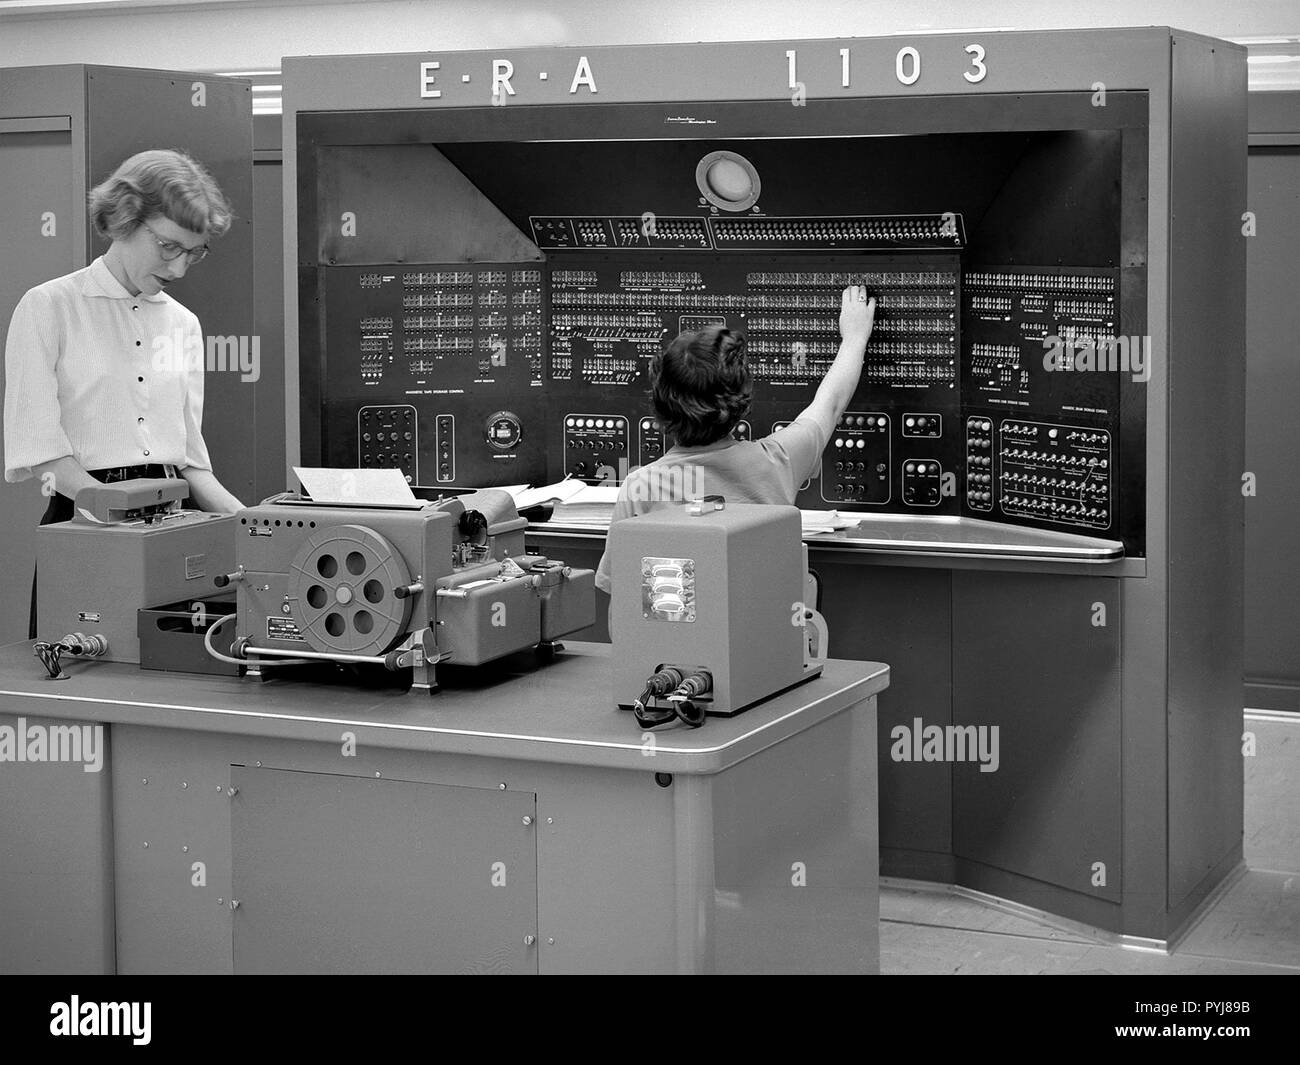 ERA 1103 UNIVAC 2 Calculating Machine ca. 1955 Stock Photo